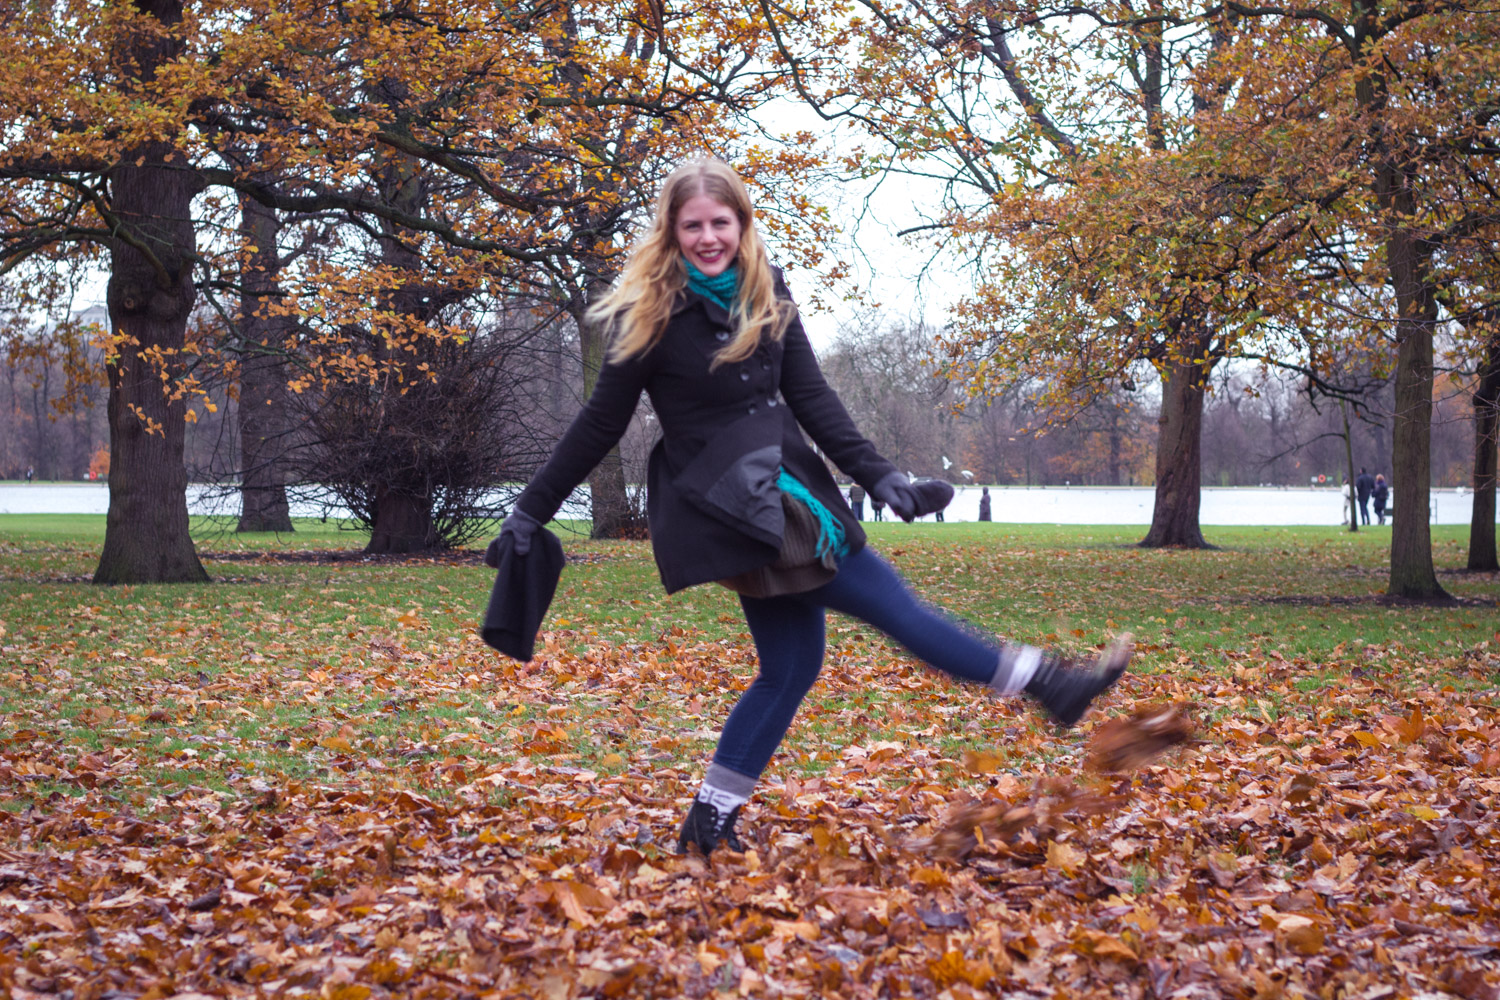 Kicking leaves in Hyde Park London